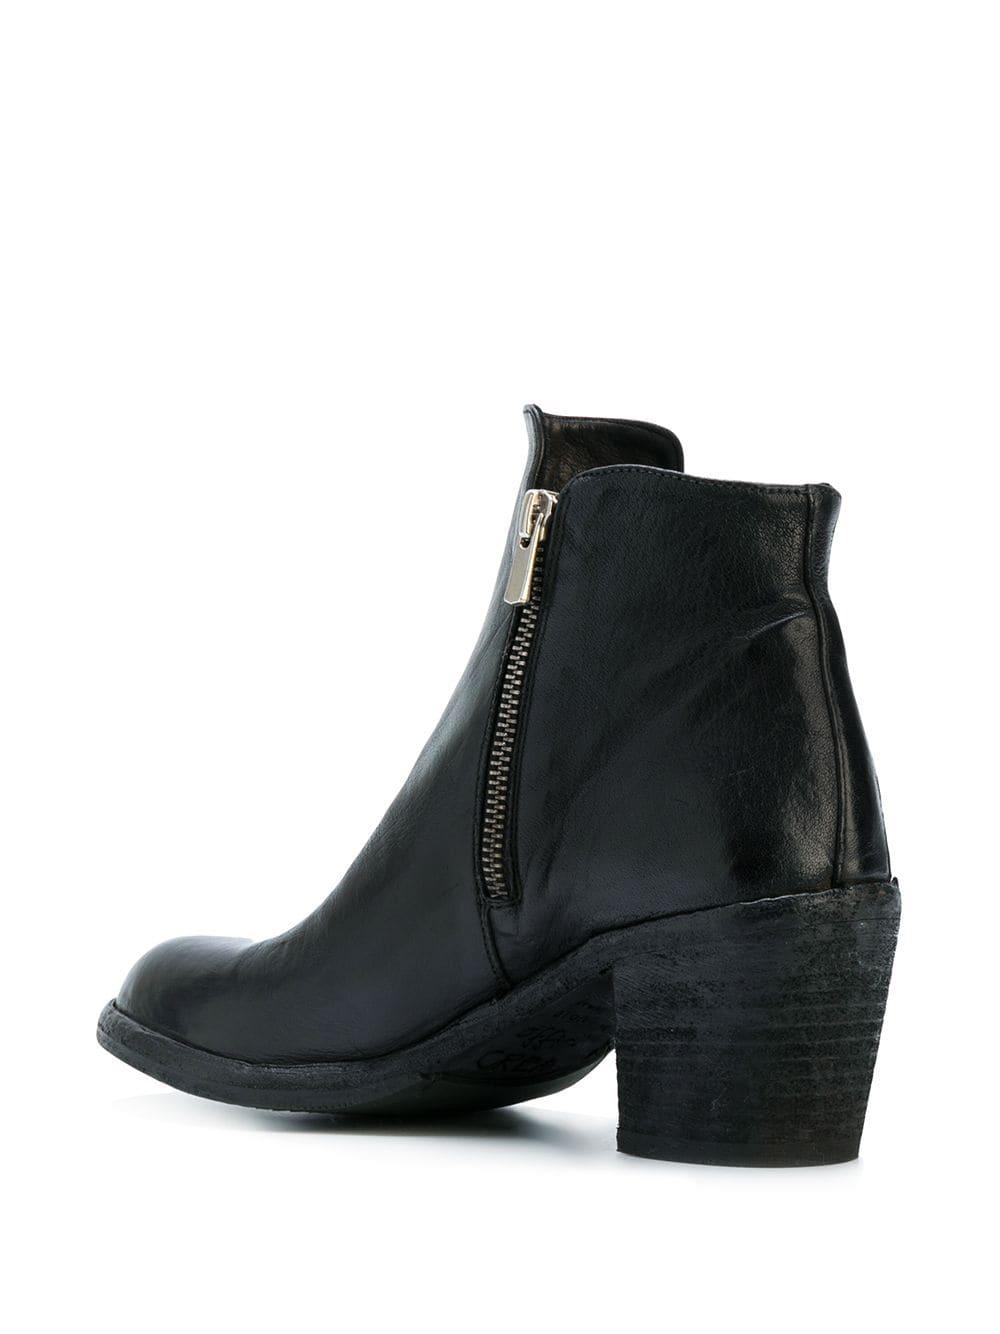 Botas Agnes Officine Creative de Cuero de color Negro